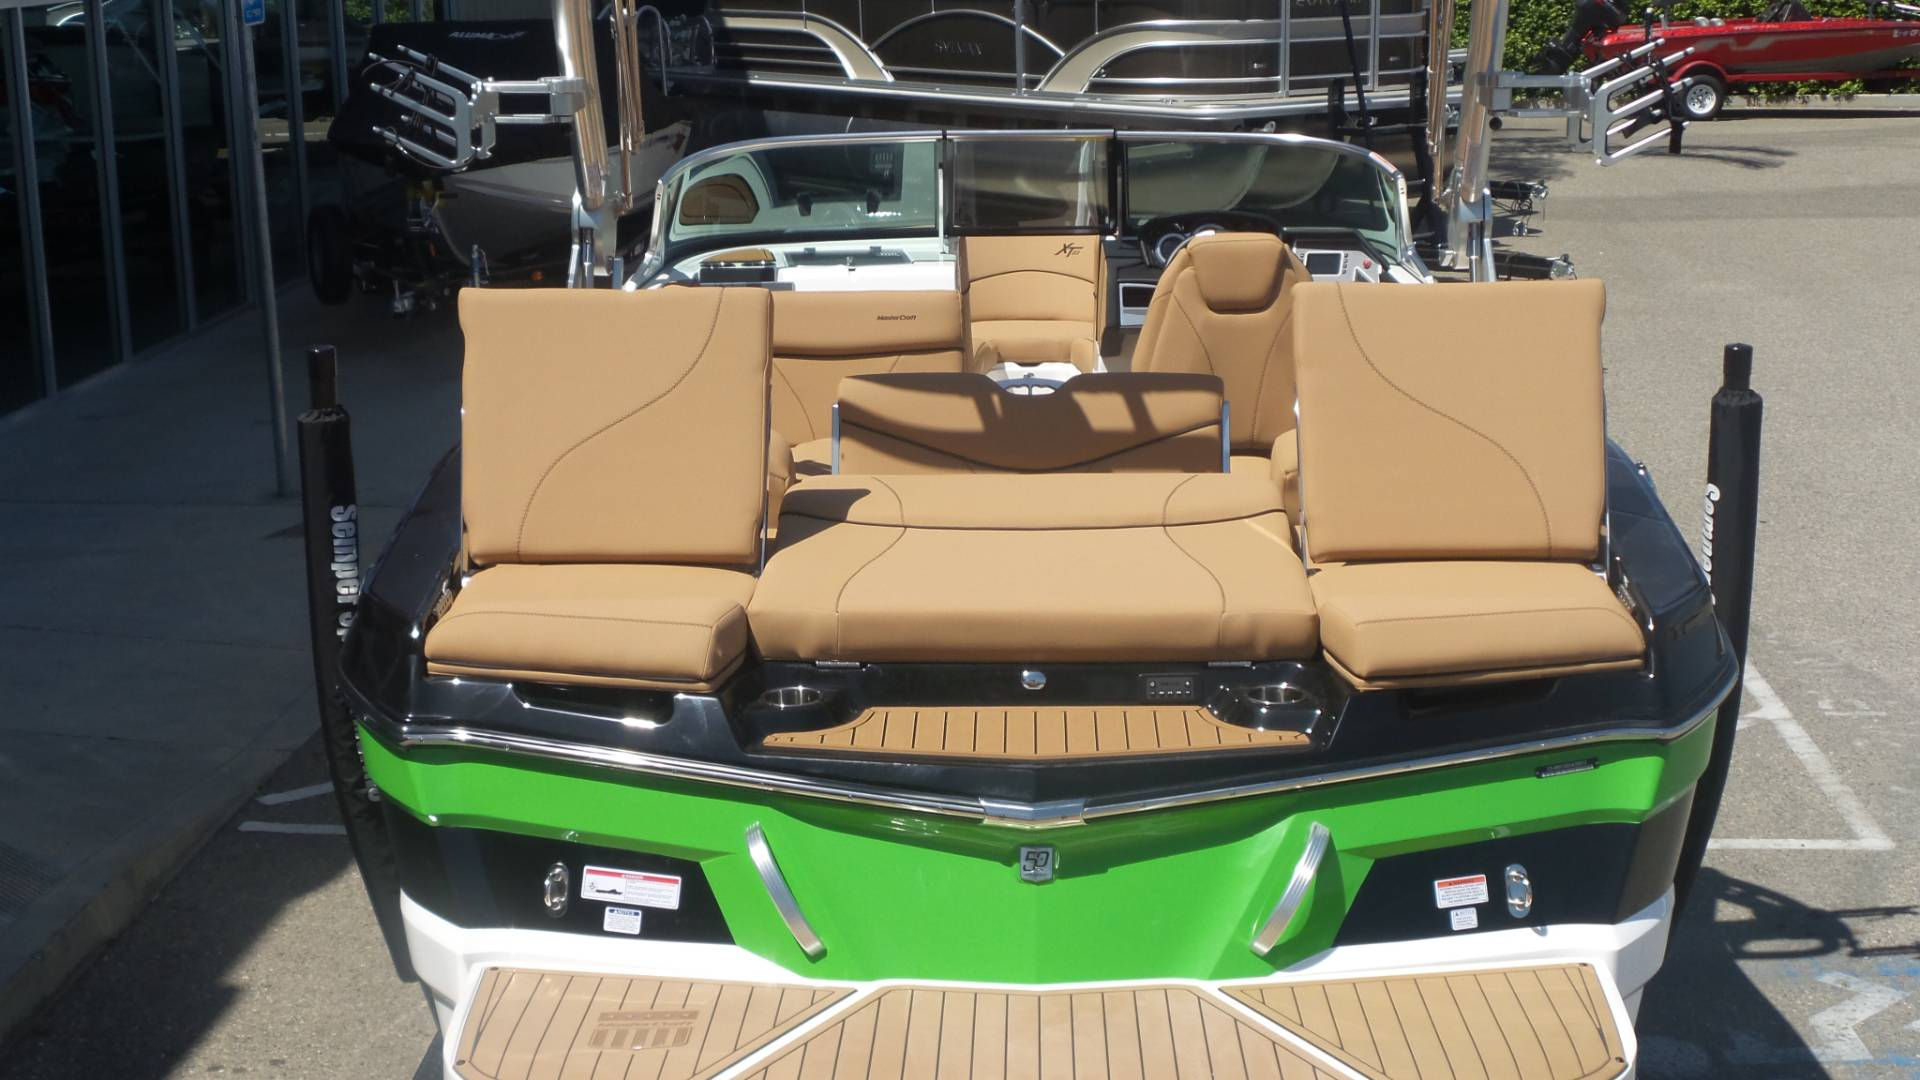 2018 Mastercraft XT23 in Madera, California